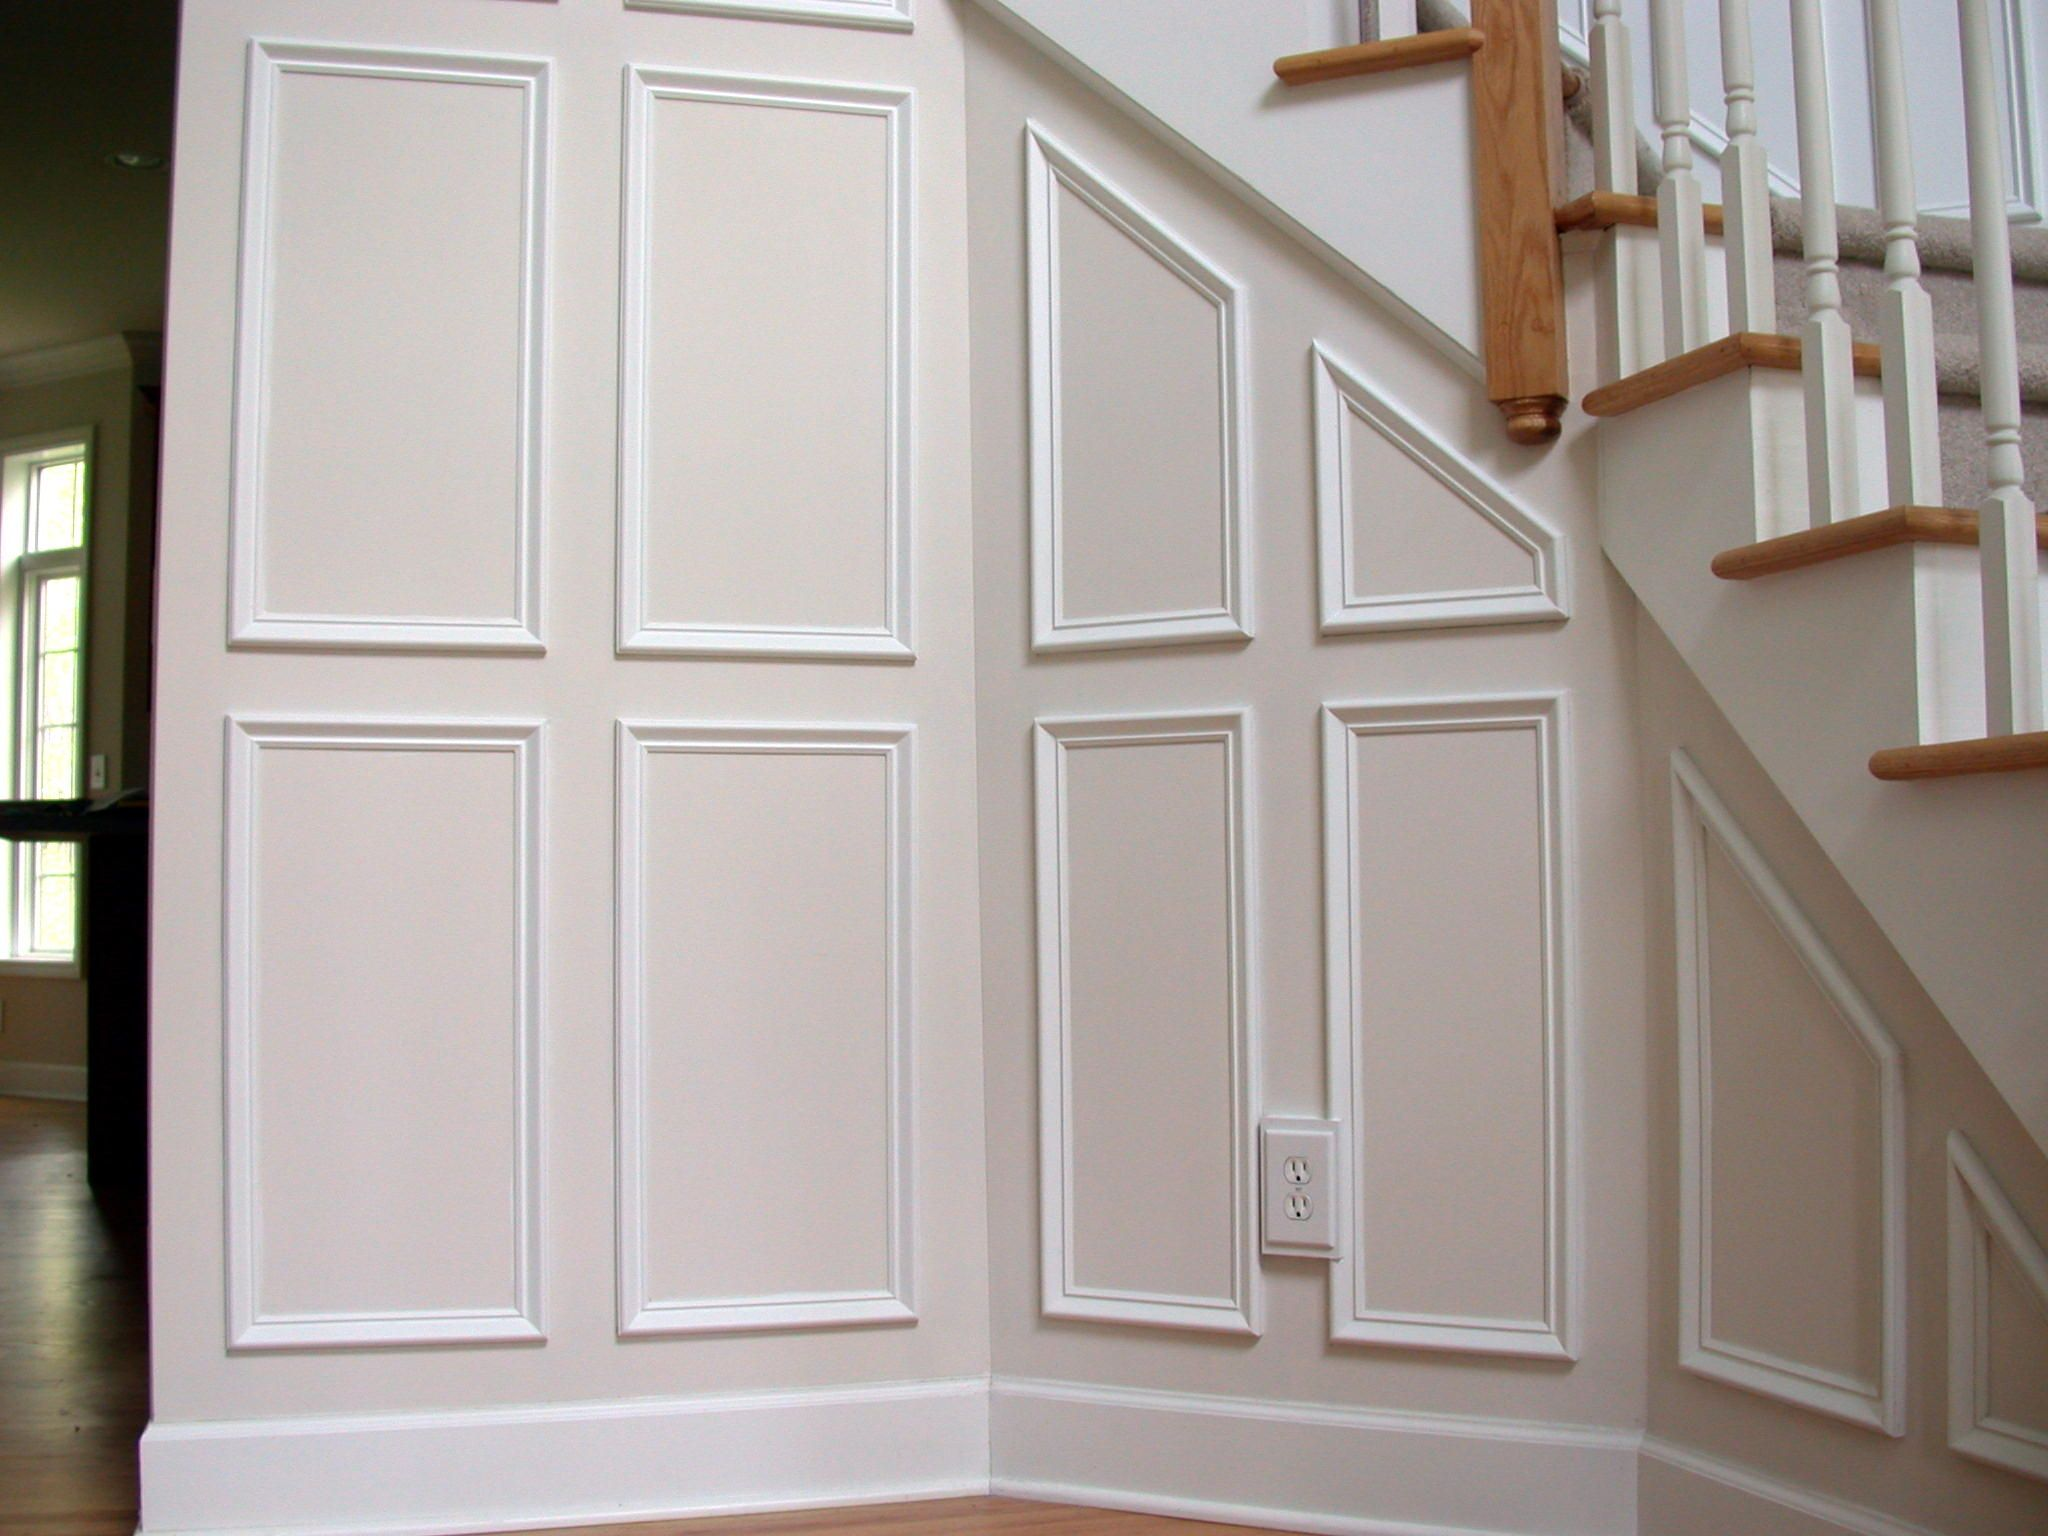 Moulding Trim Tags Bead Board Chair Rail Crown Molding Home Remodeling